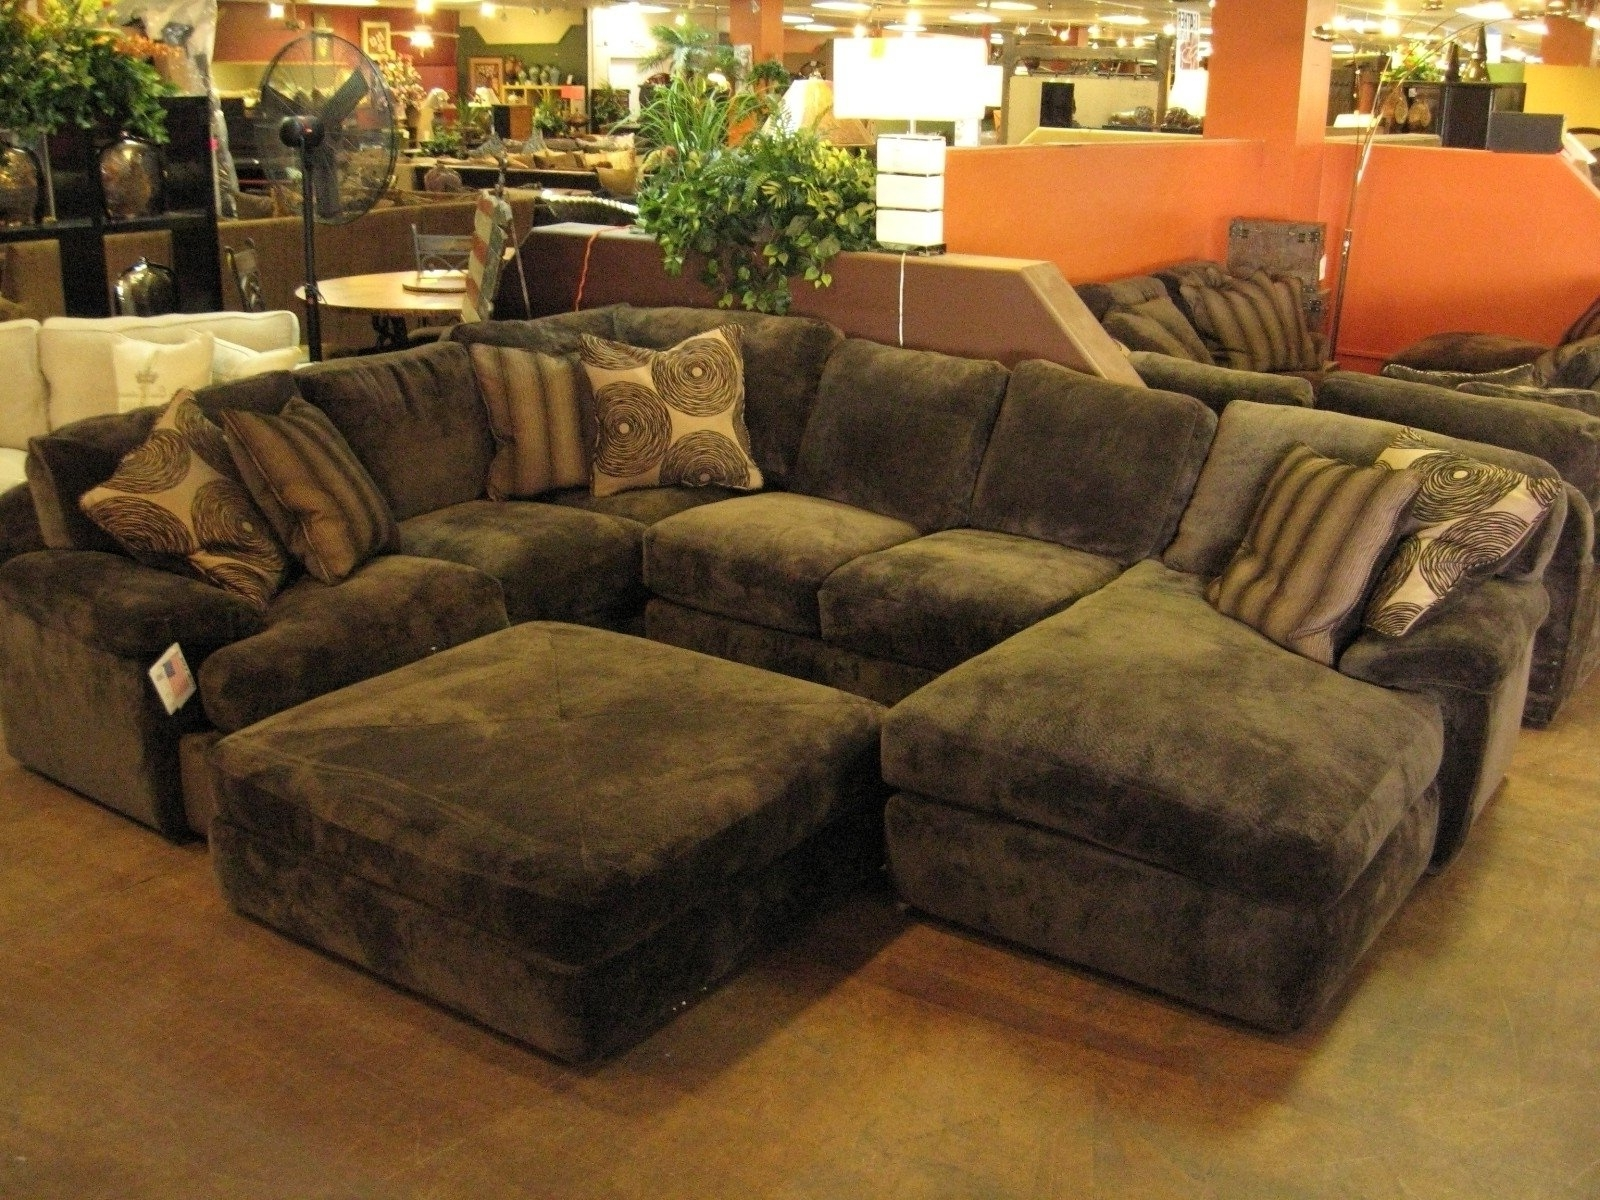 Famous Oversized Sectional Sofas Pertaining To Interior Luxury Oversized Sectional Sofa For Awesome Living Room (View 4 of 20)